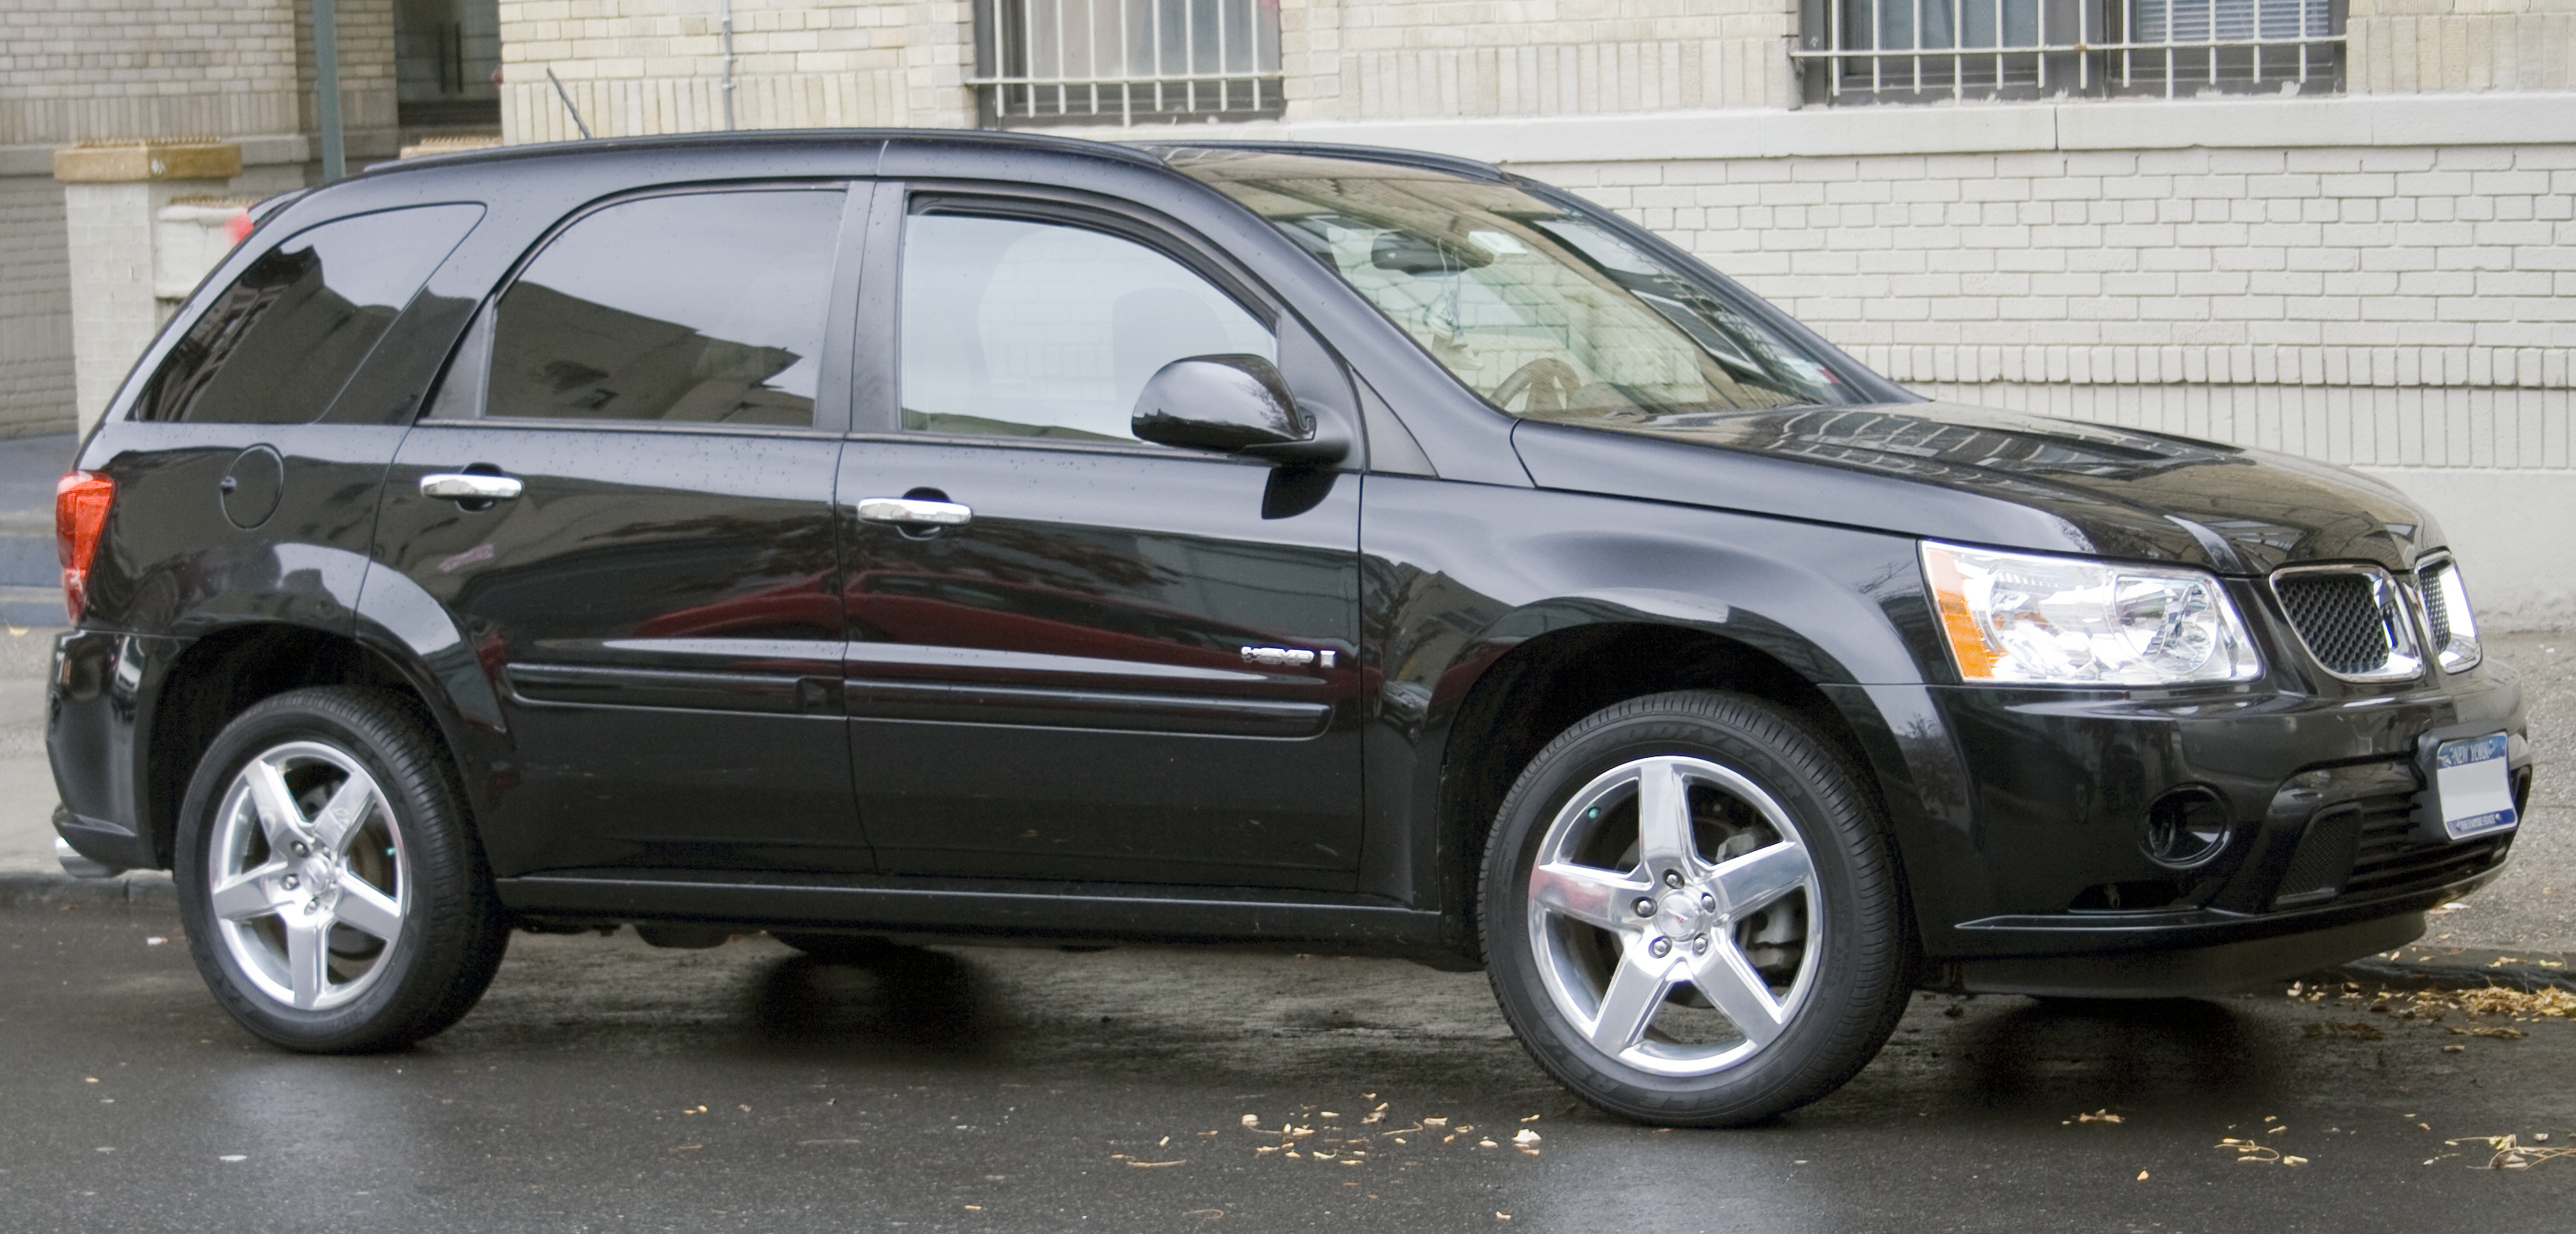 Pontiac Torrent GXP #1